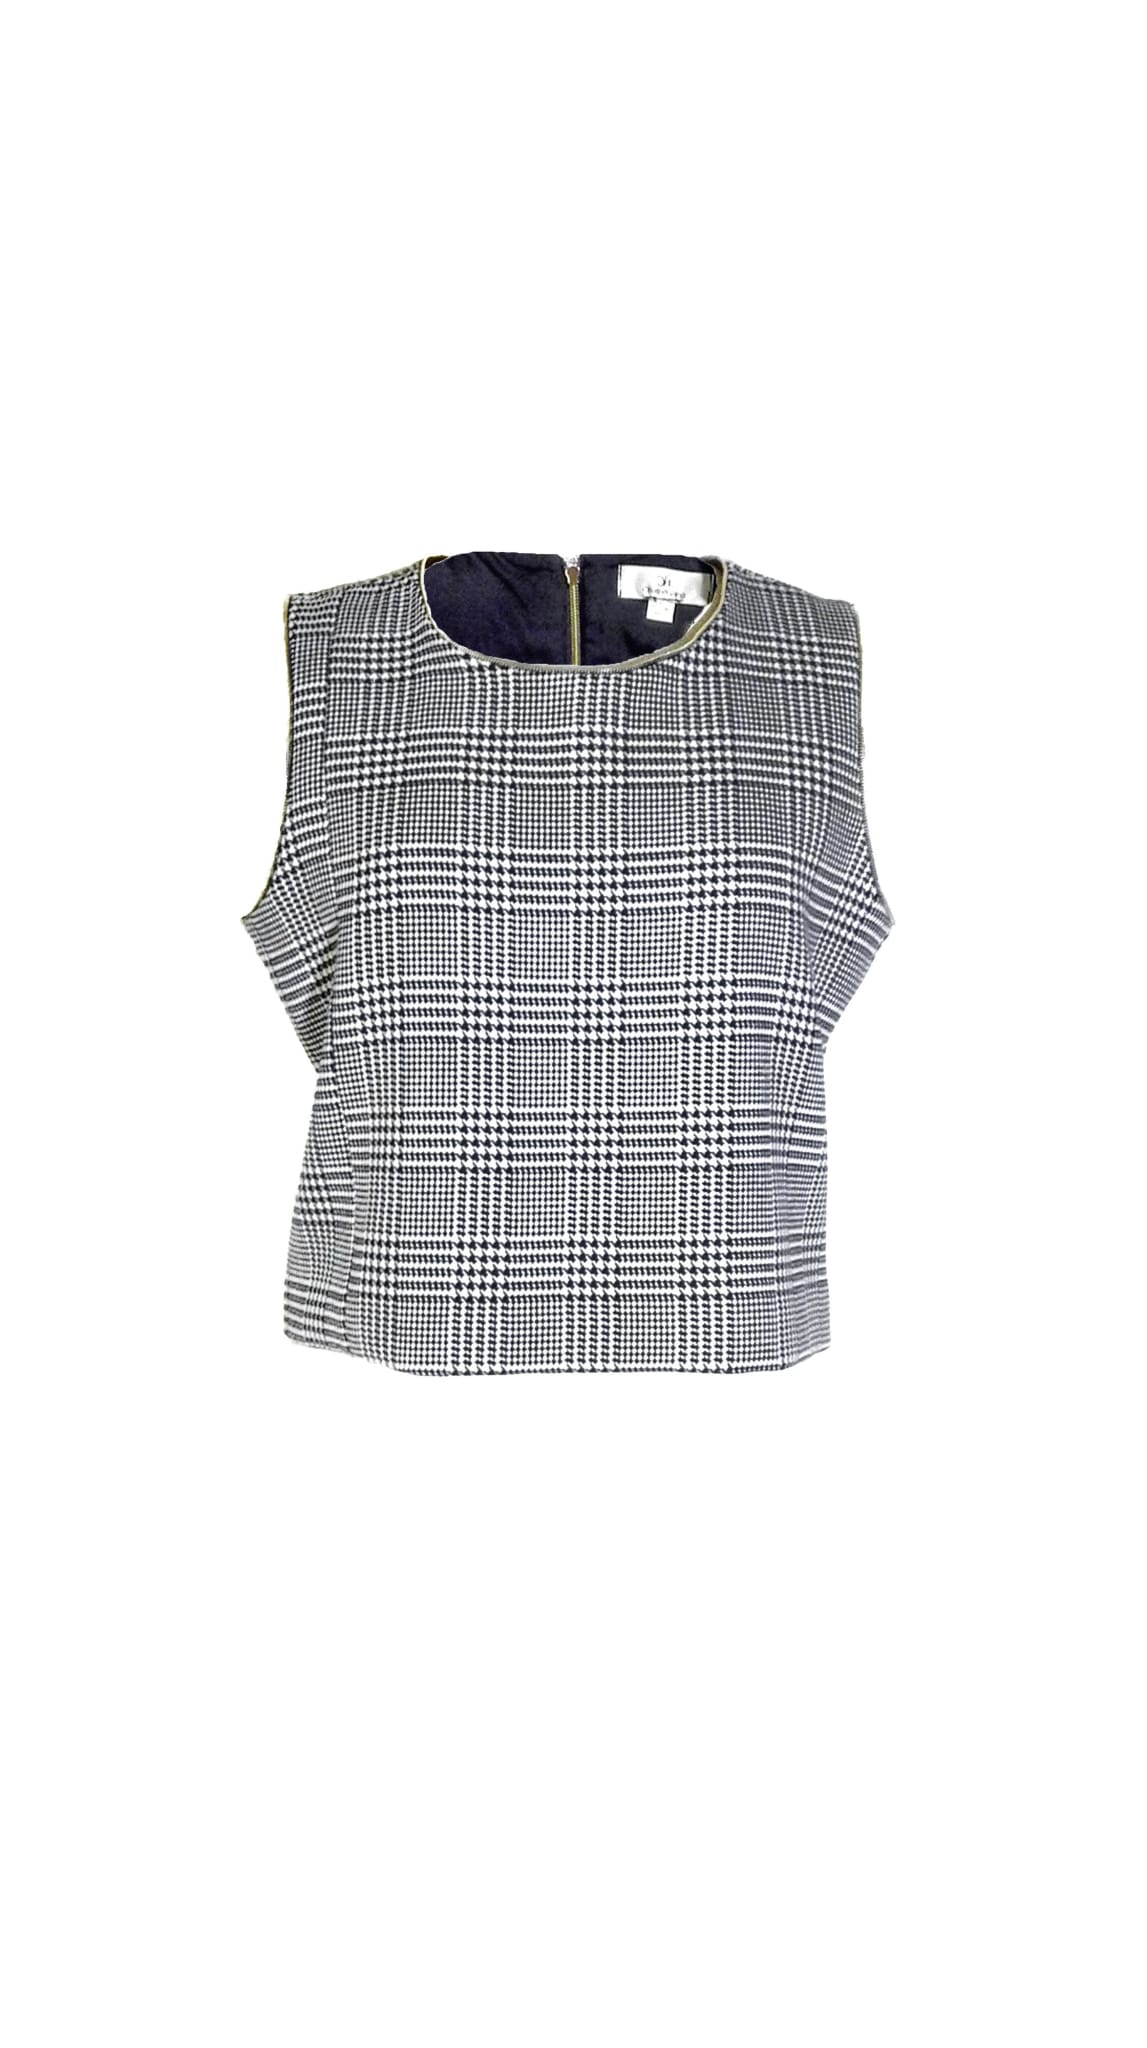 black and white houndstooth sleeveless Off Pattern Top by Chanho Jang | Nineteenth Amendment